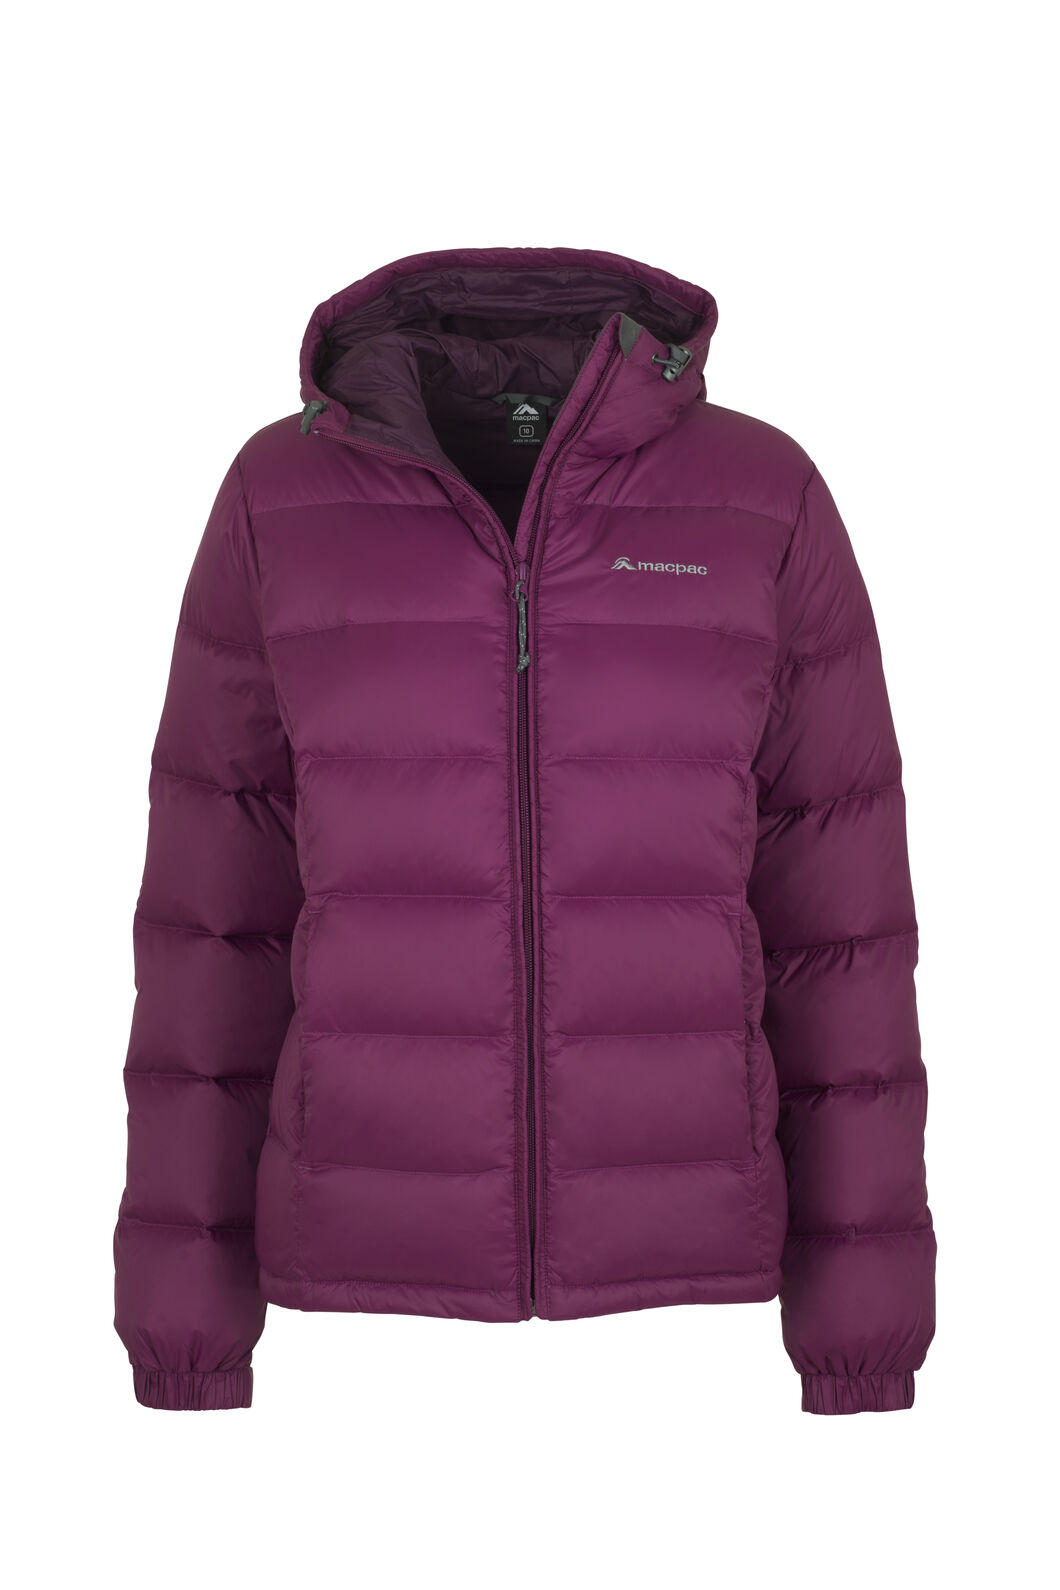 8f8c6d3b Macpac Halo Hooded Down Jacket - Women's, Magenta, ...